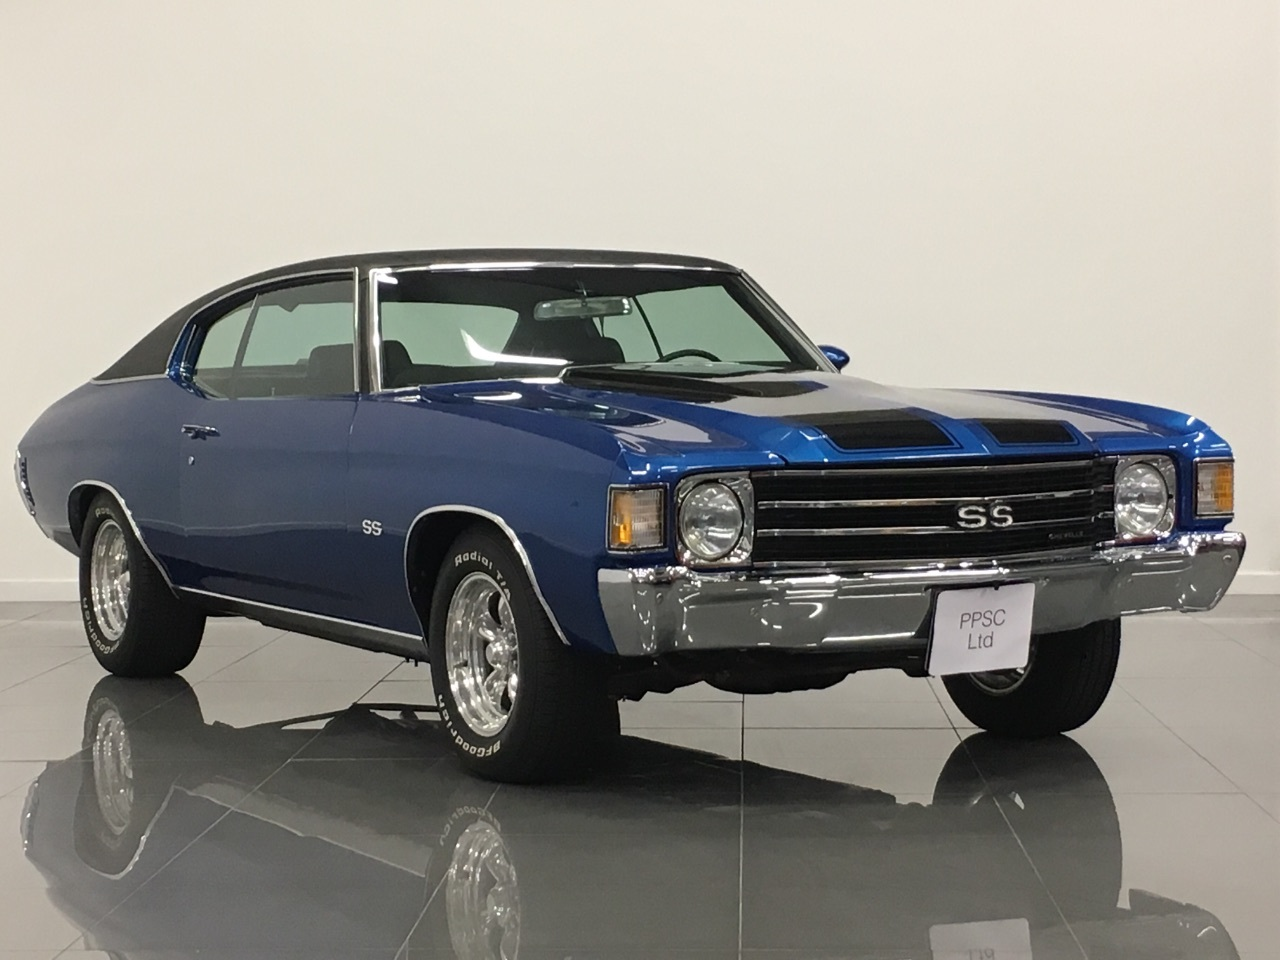 Chevrolet Chevy 5.7 Chevelle Coupe Petrol Metallic Ocean Blue